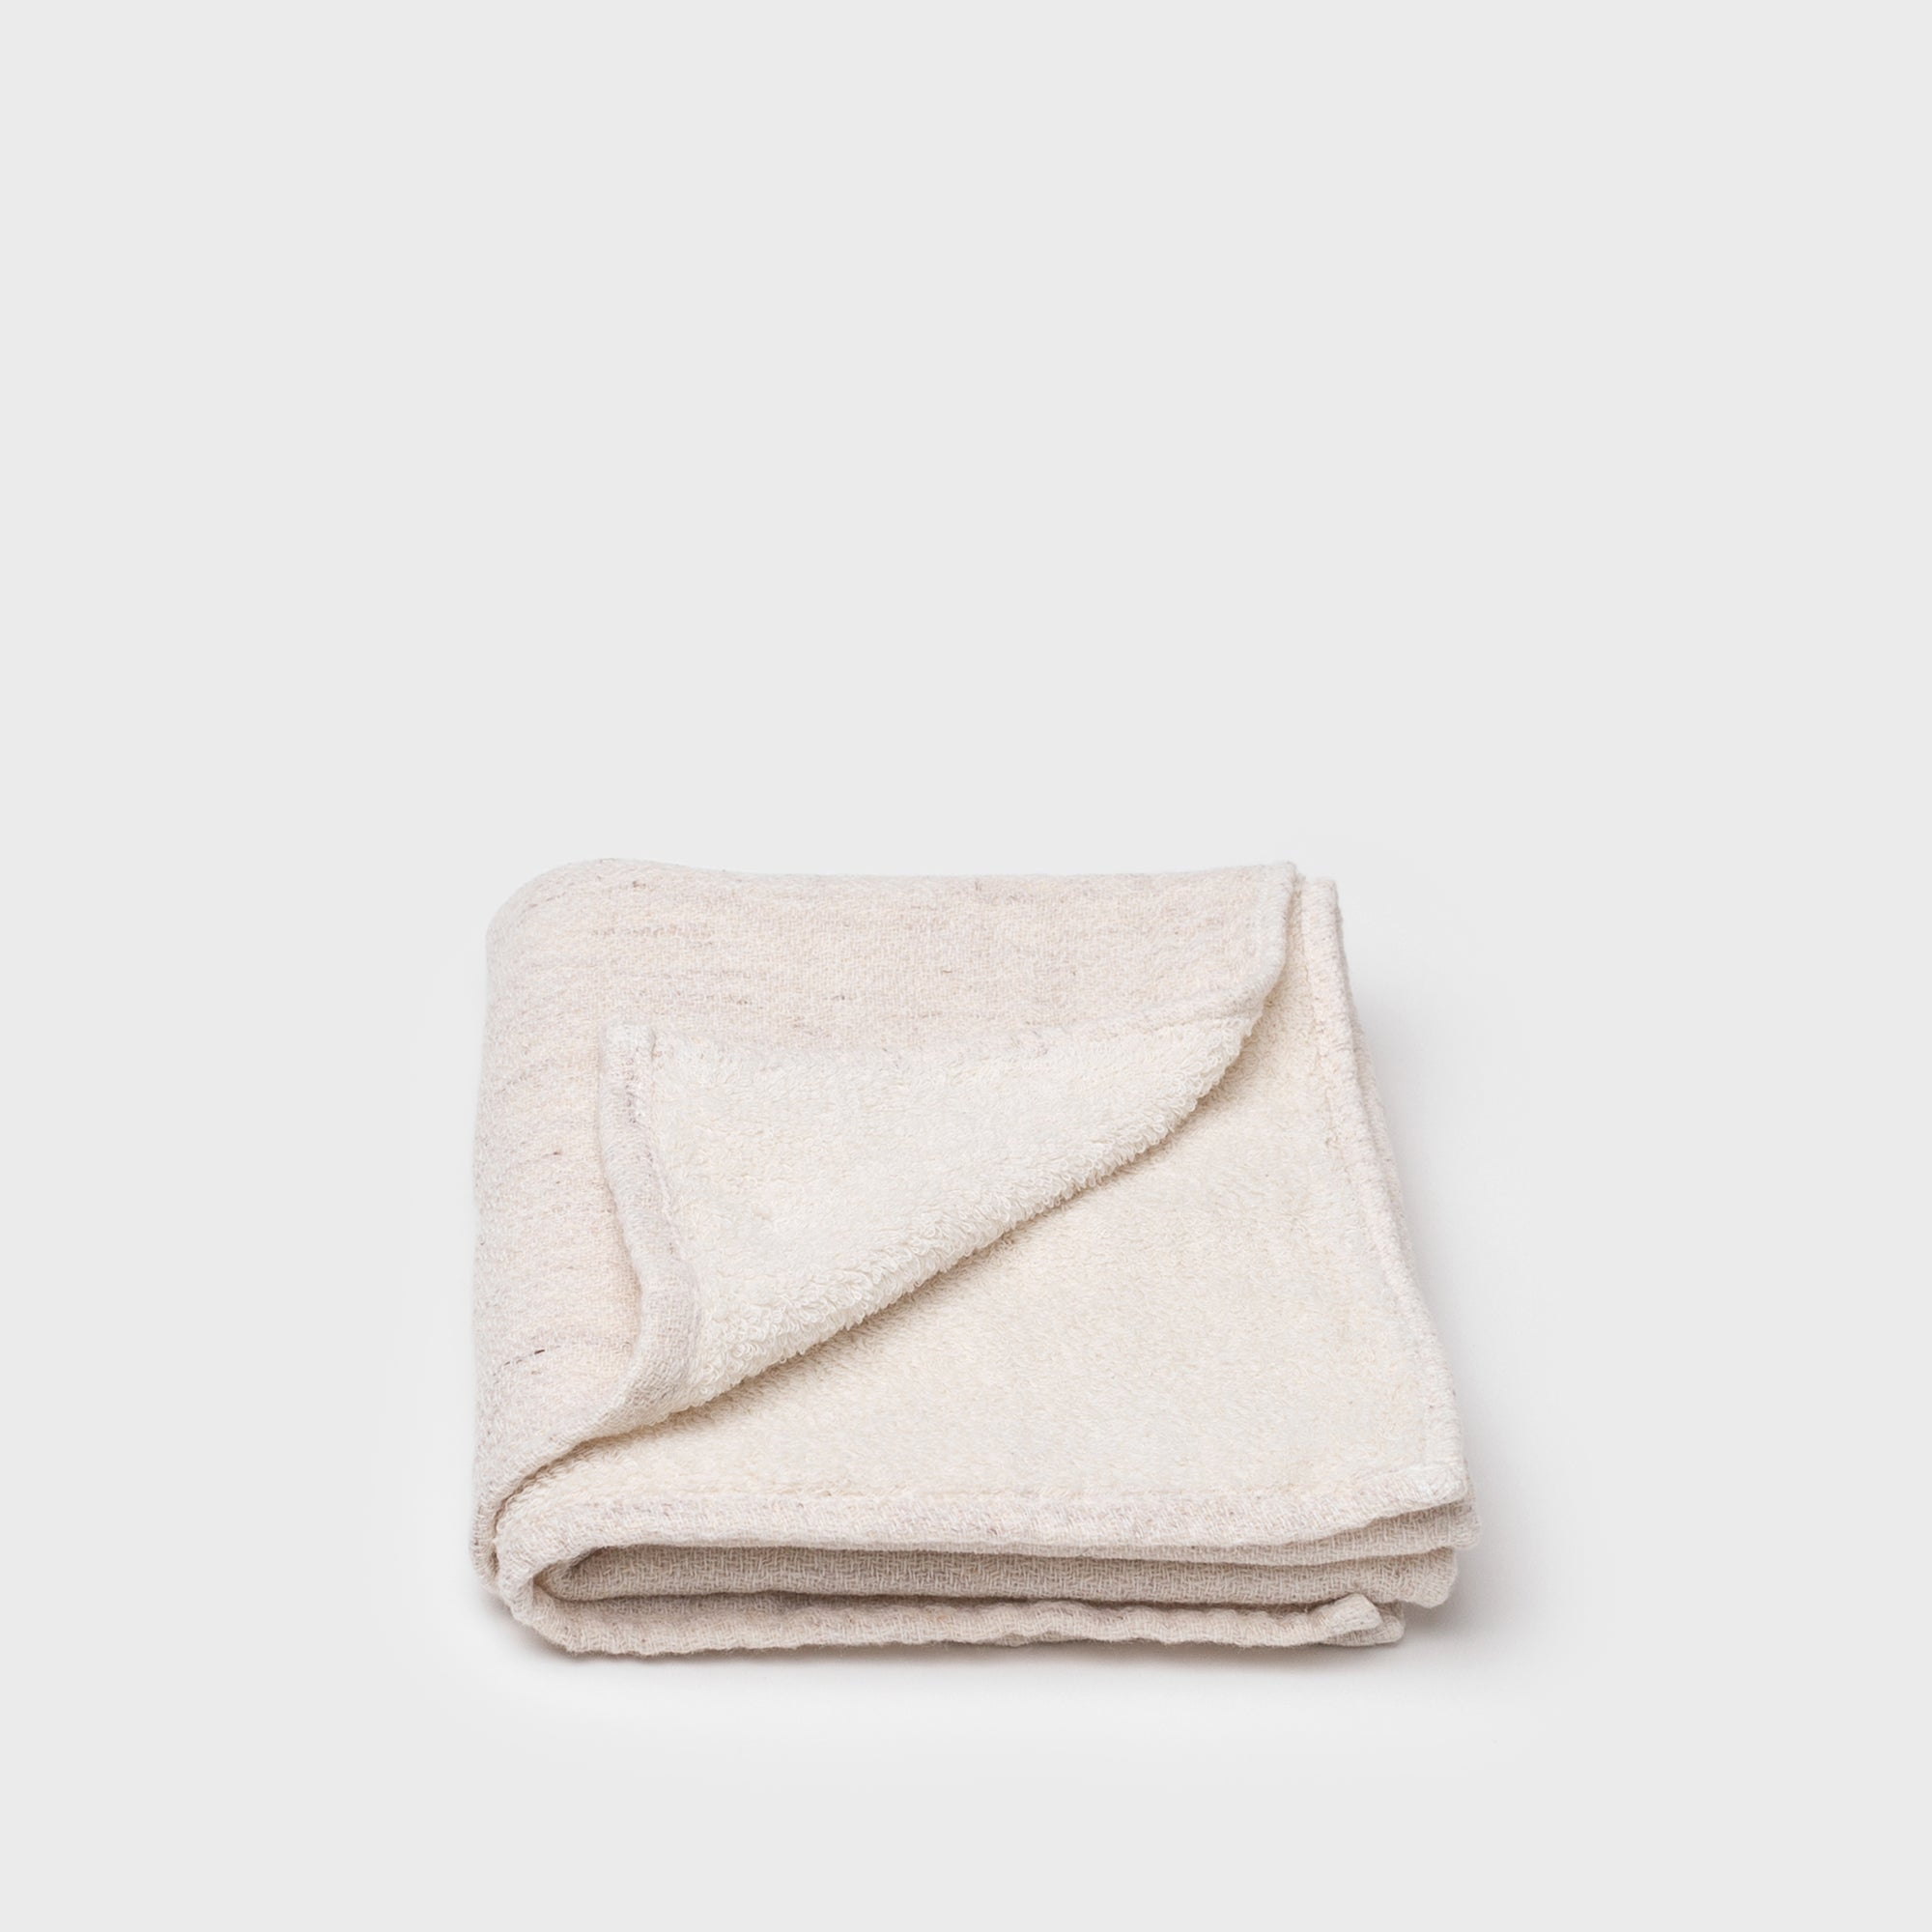 Claire Almond Powder - Bath - Hand Towels – Shoppe Amber Interiors